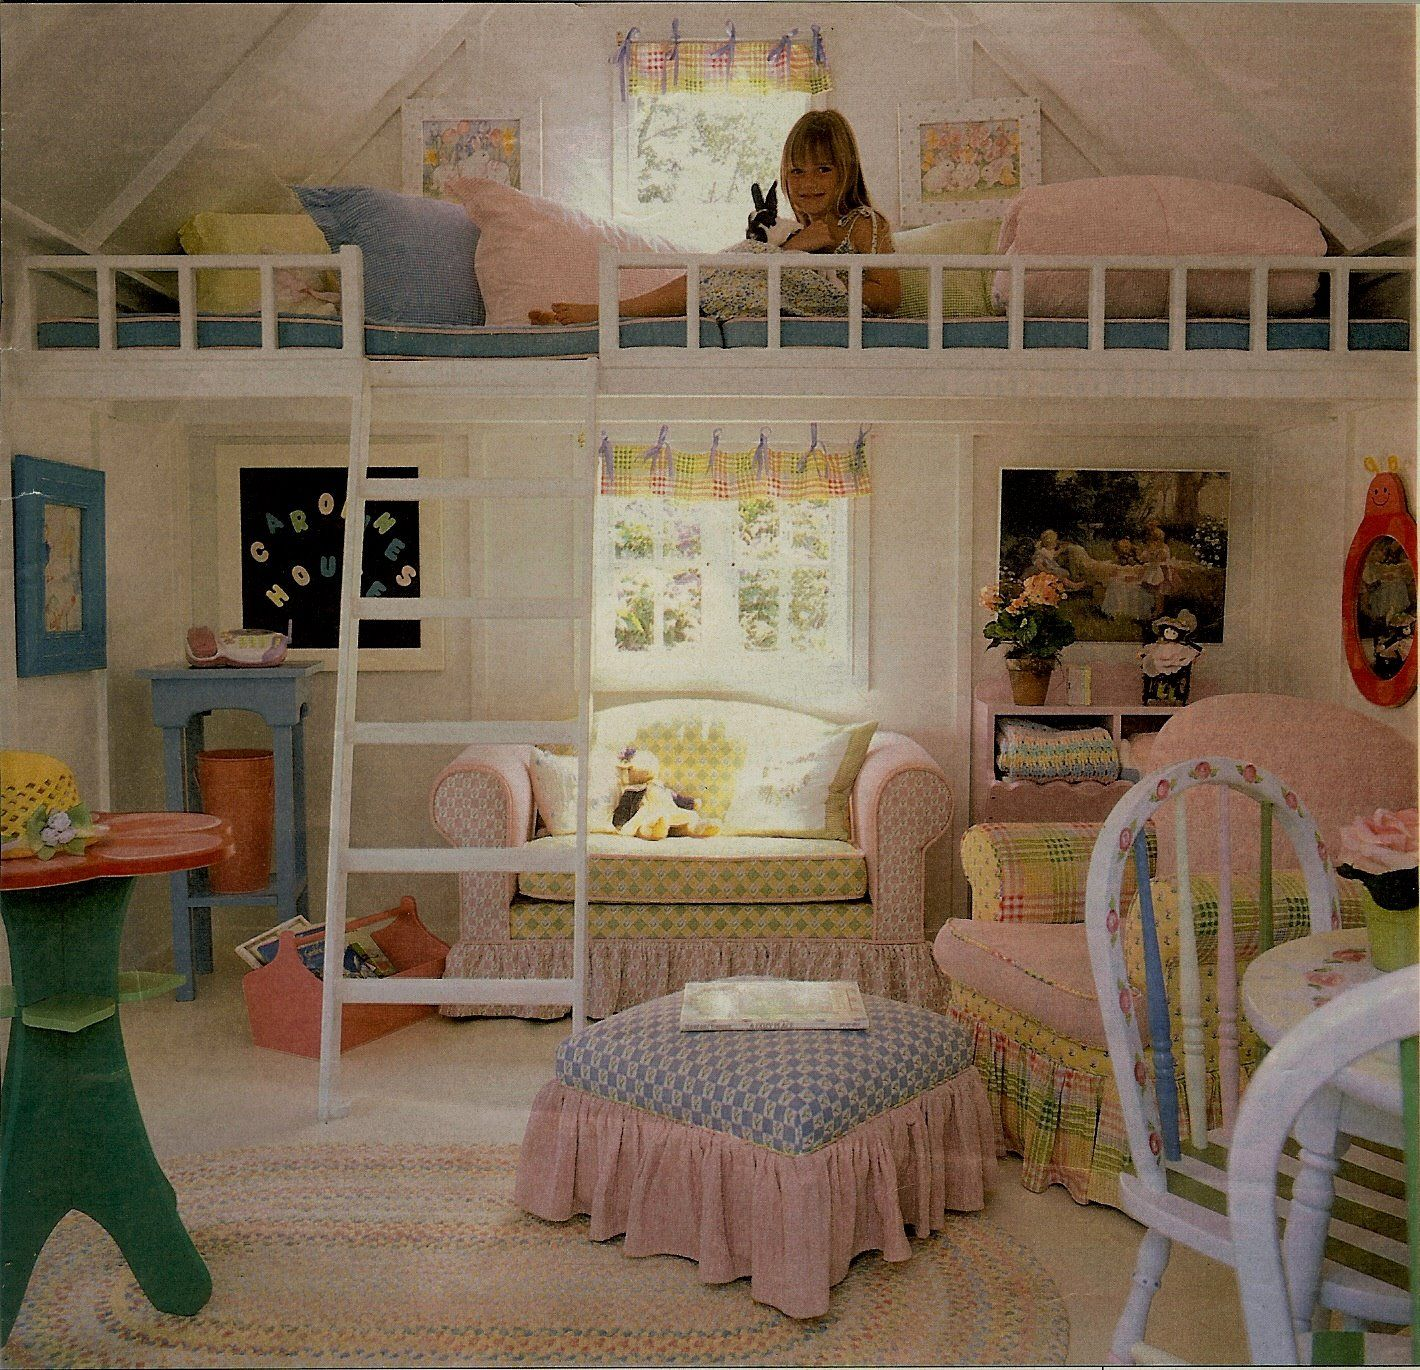 Stora loft bed ideas   Amazing Loft Ideas  Beds and Playrooms  Small scale furniture